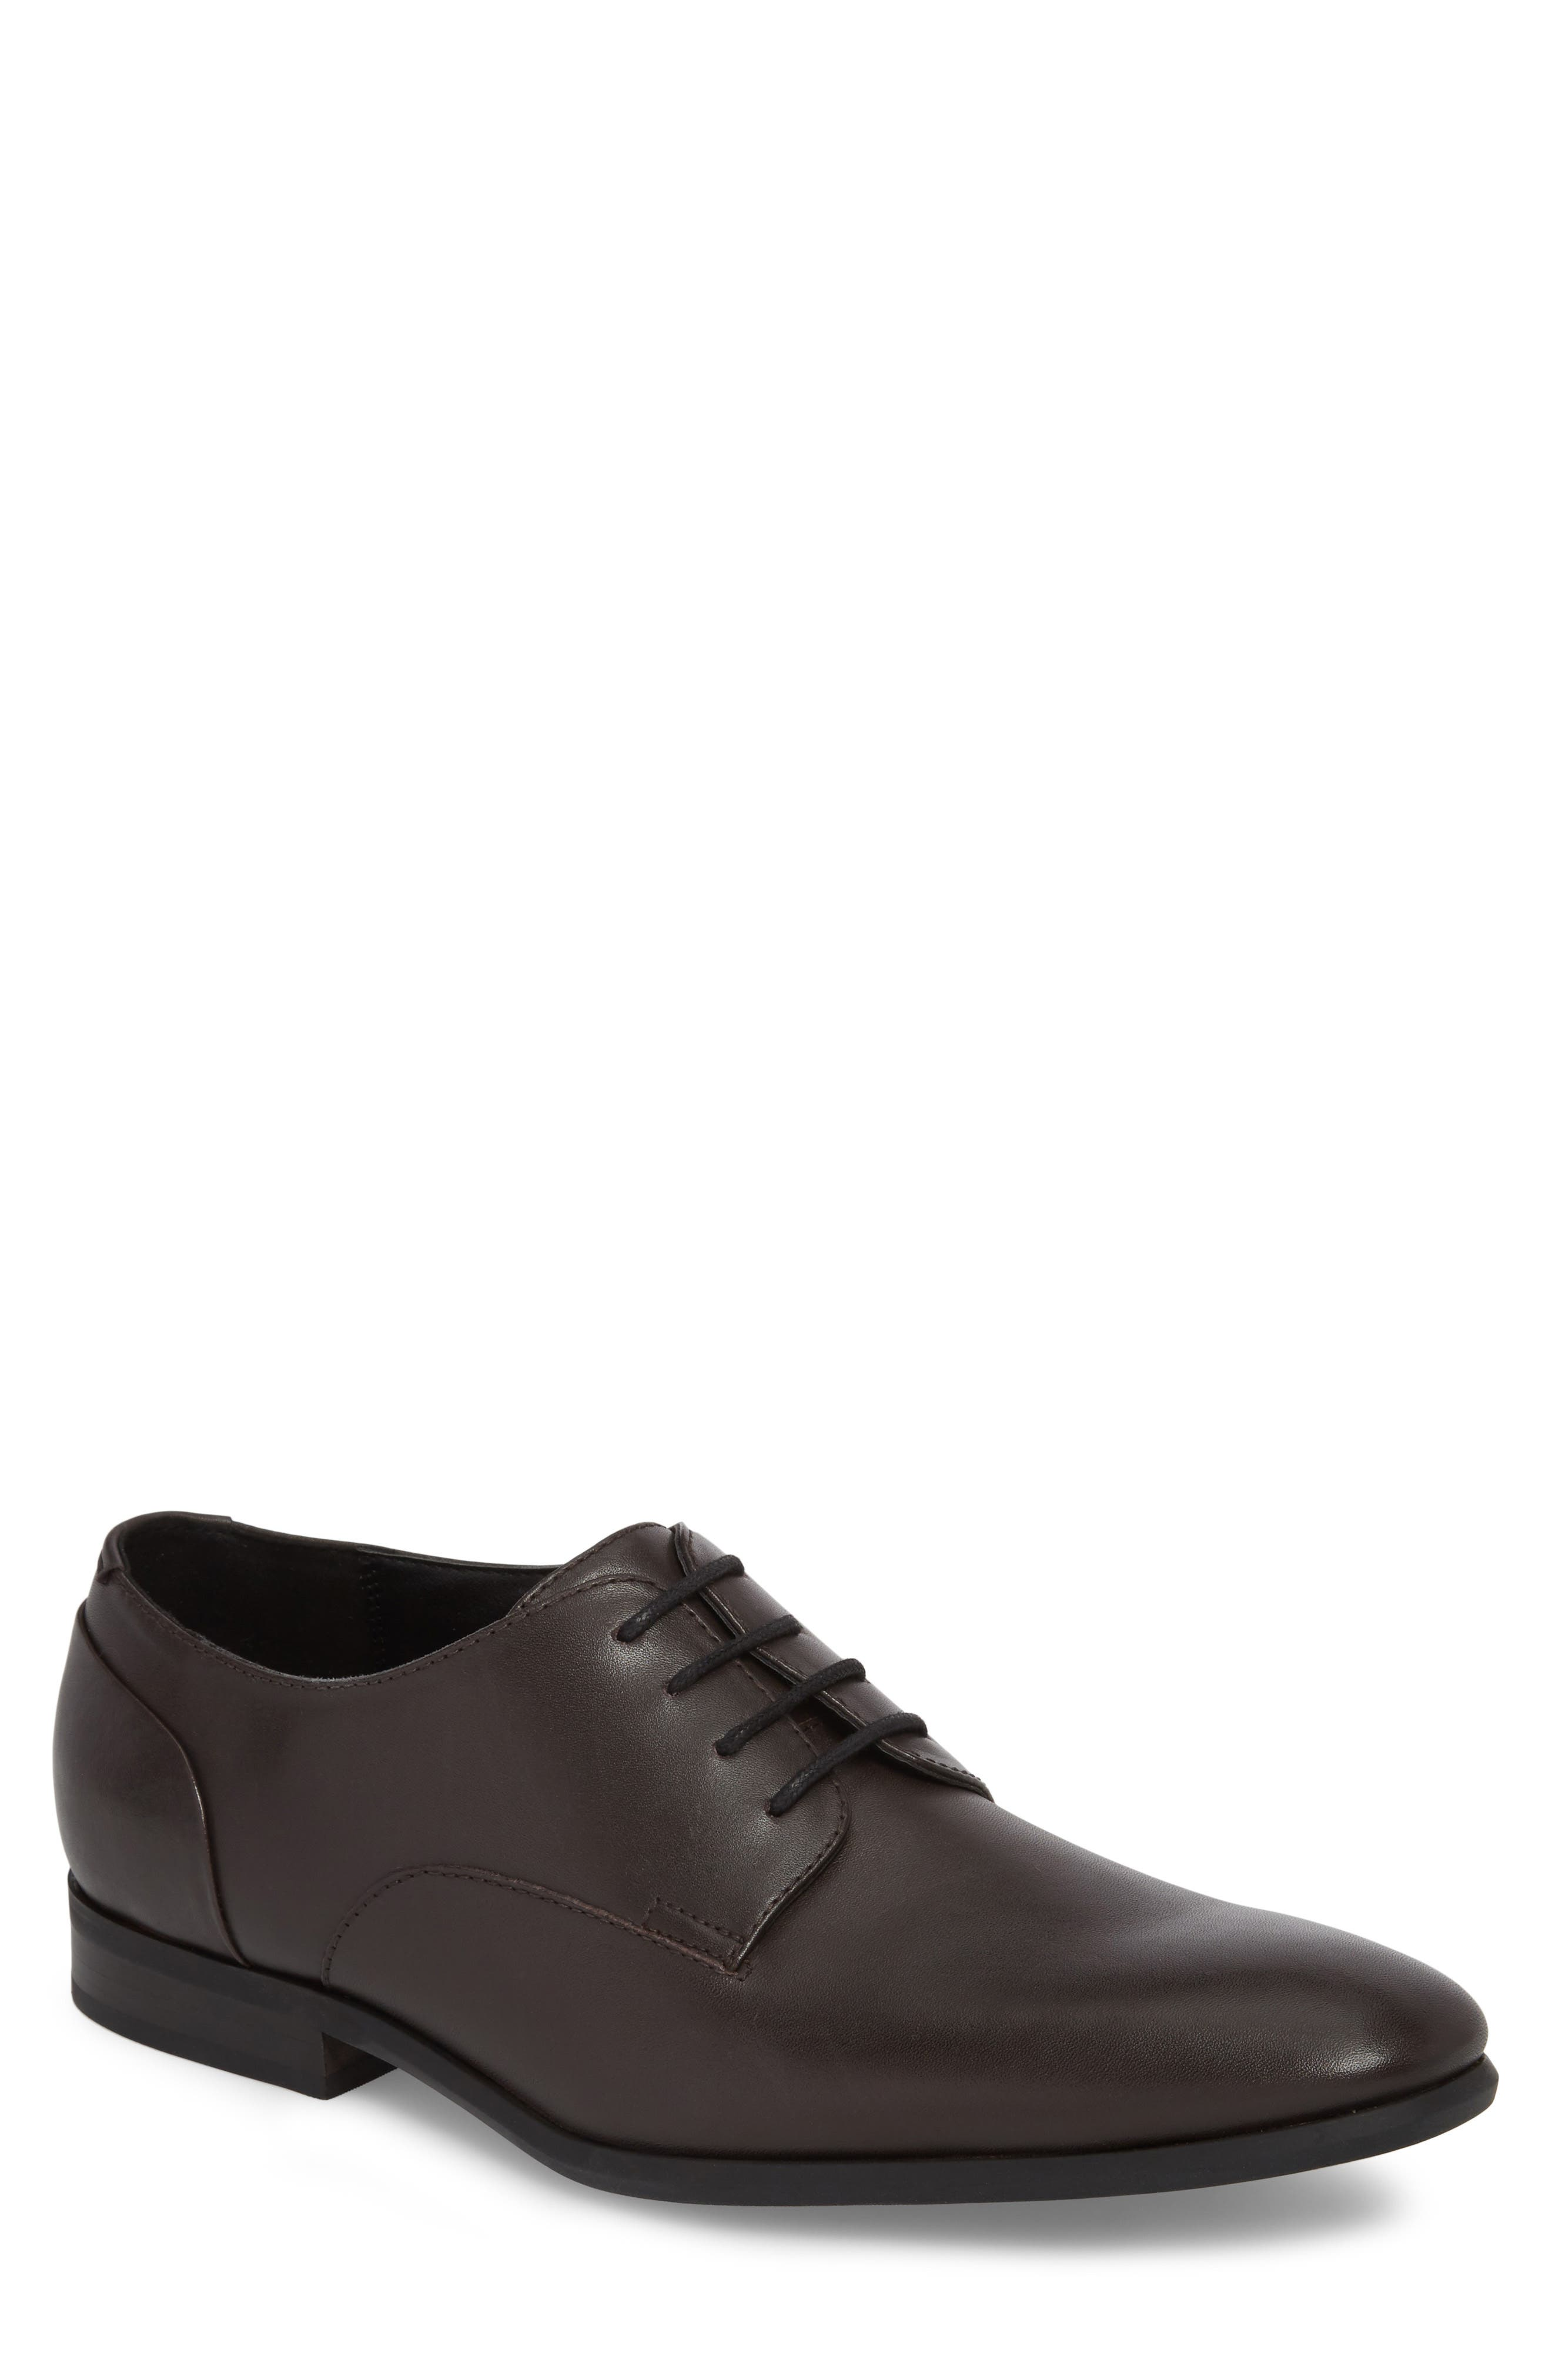 Lucca Plain Toe Derby,                             Main thumbnail 1, color,                             Dark Brown Leather